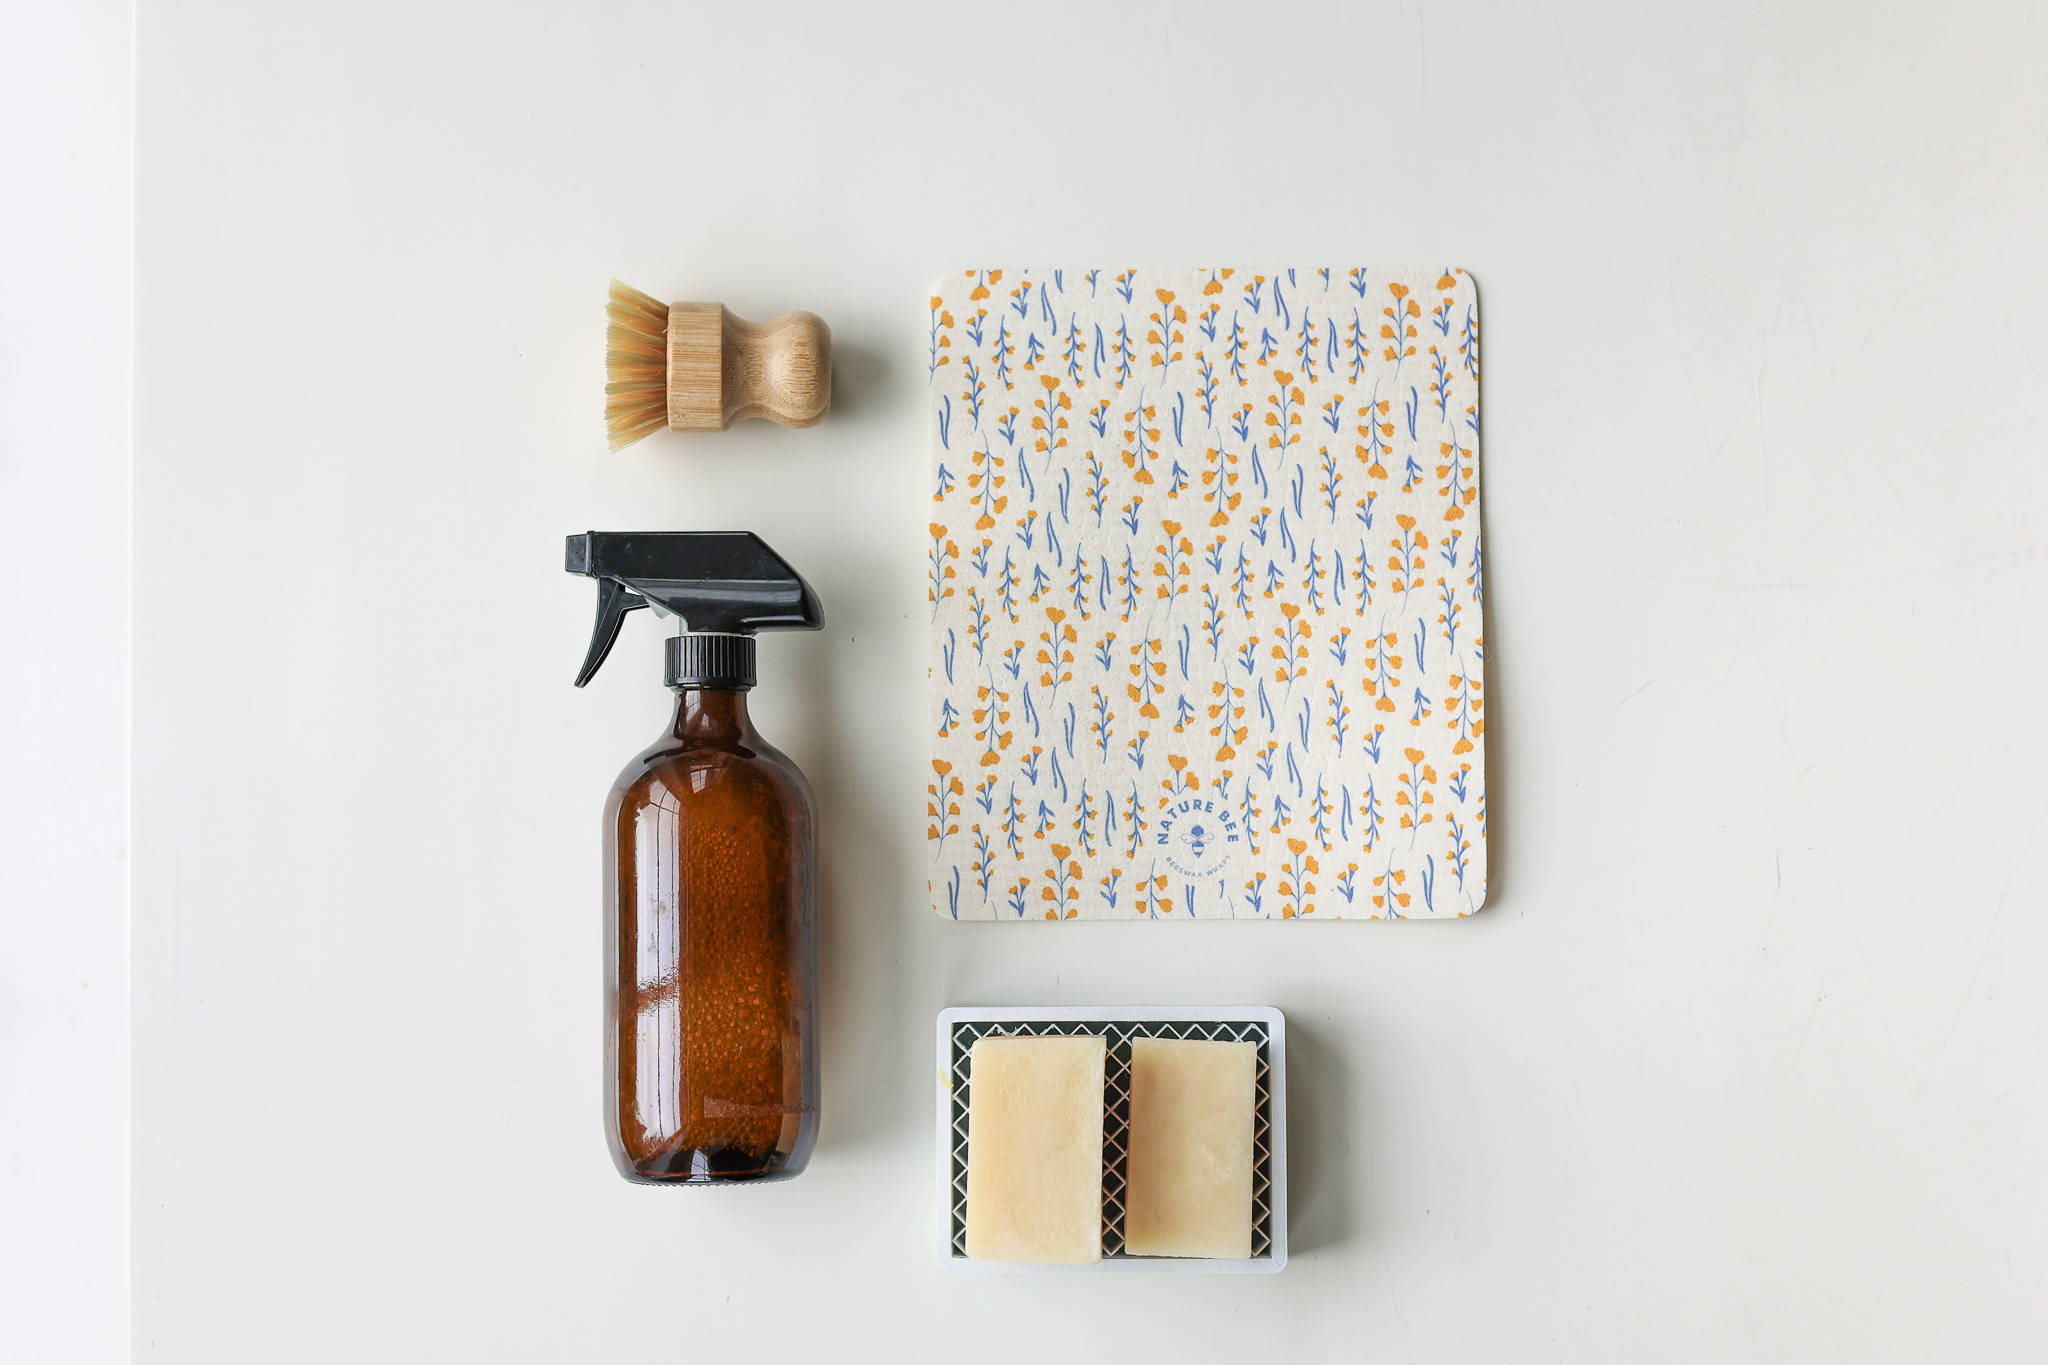 Nature Bee Beeswaxwrap Spring Cleaning Guide